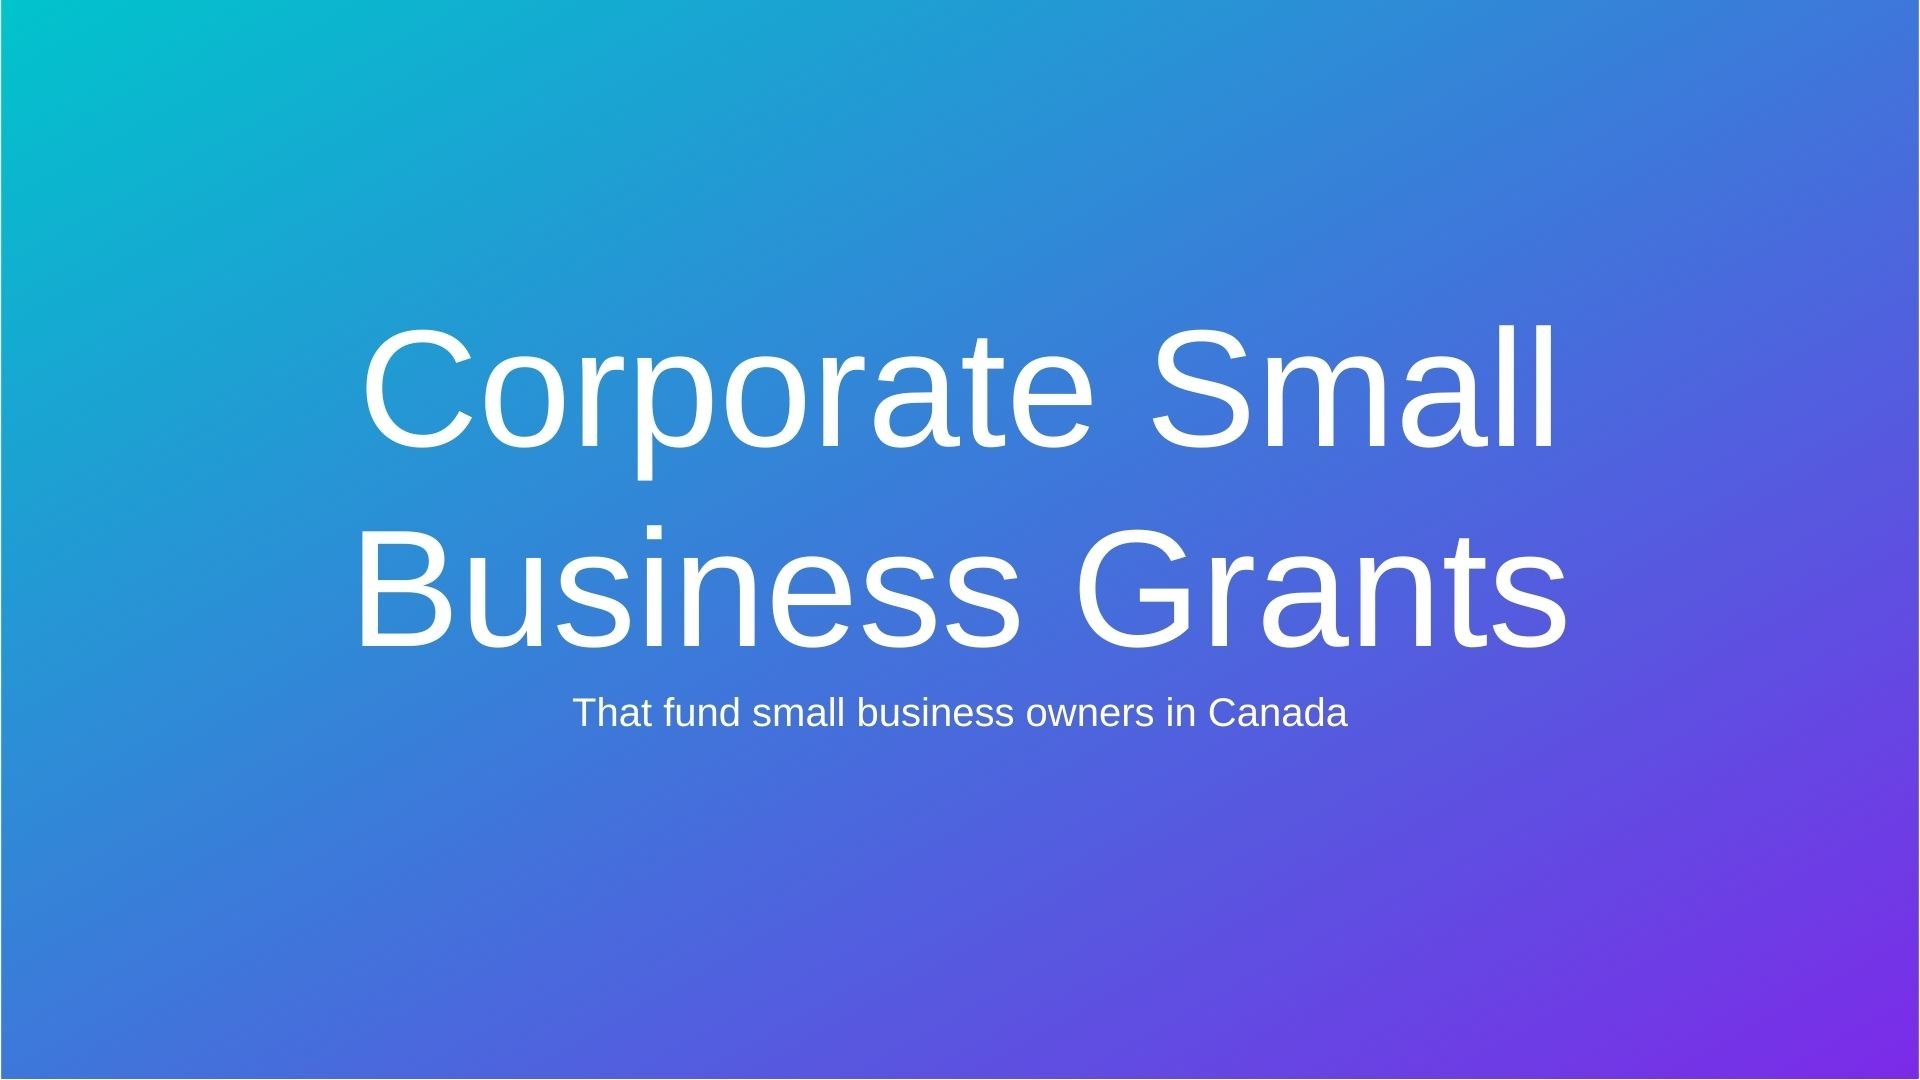 Corporate Small Business Grants